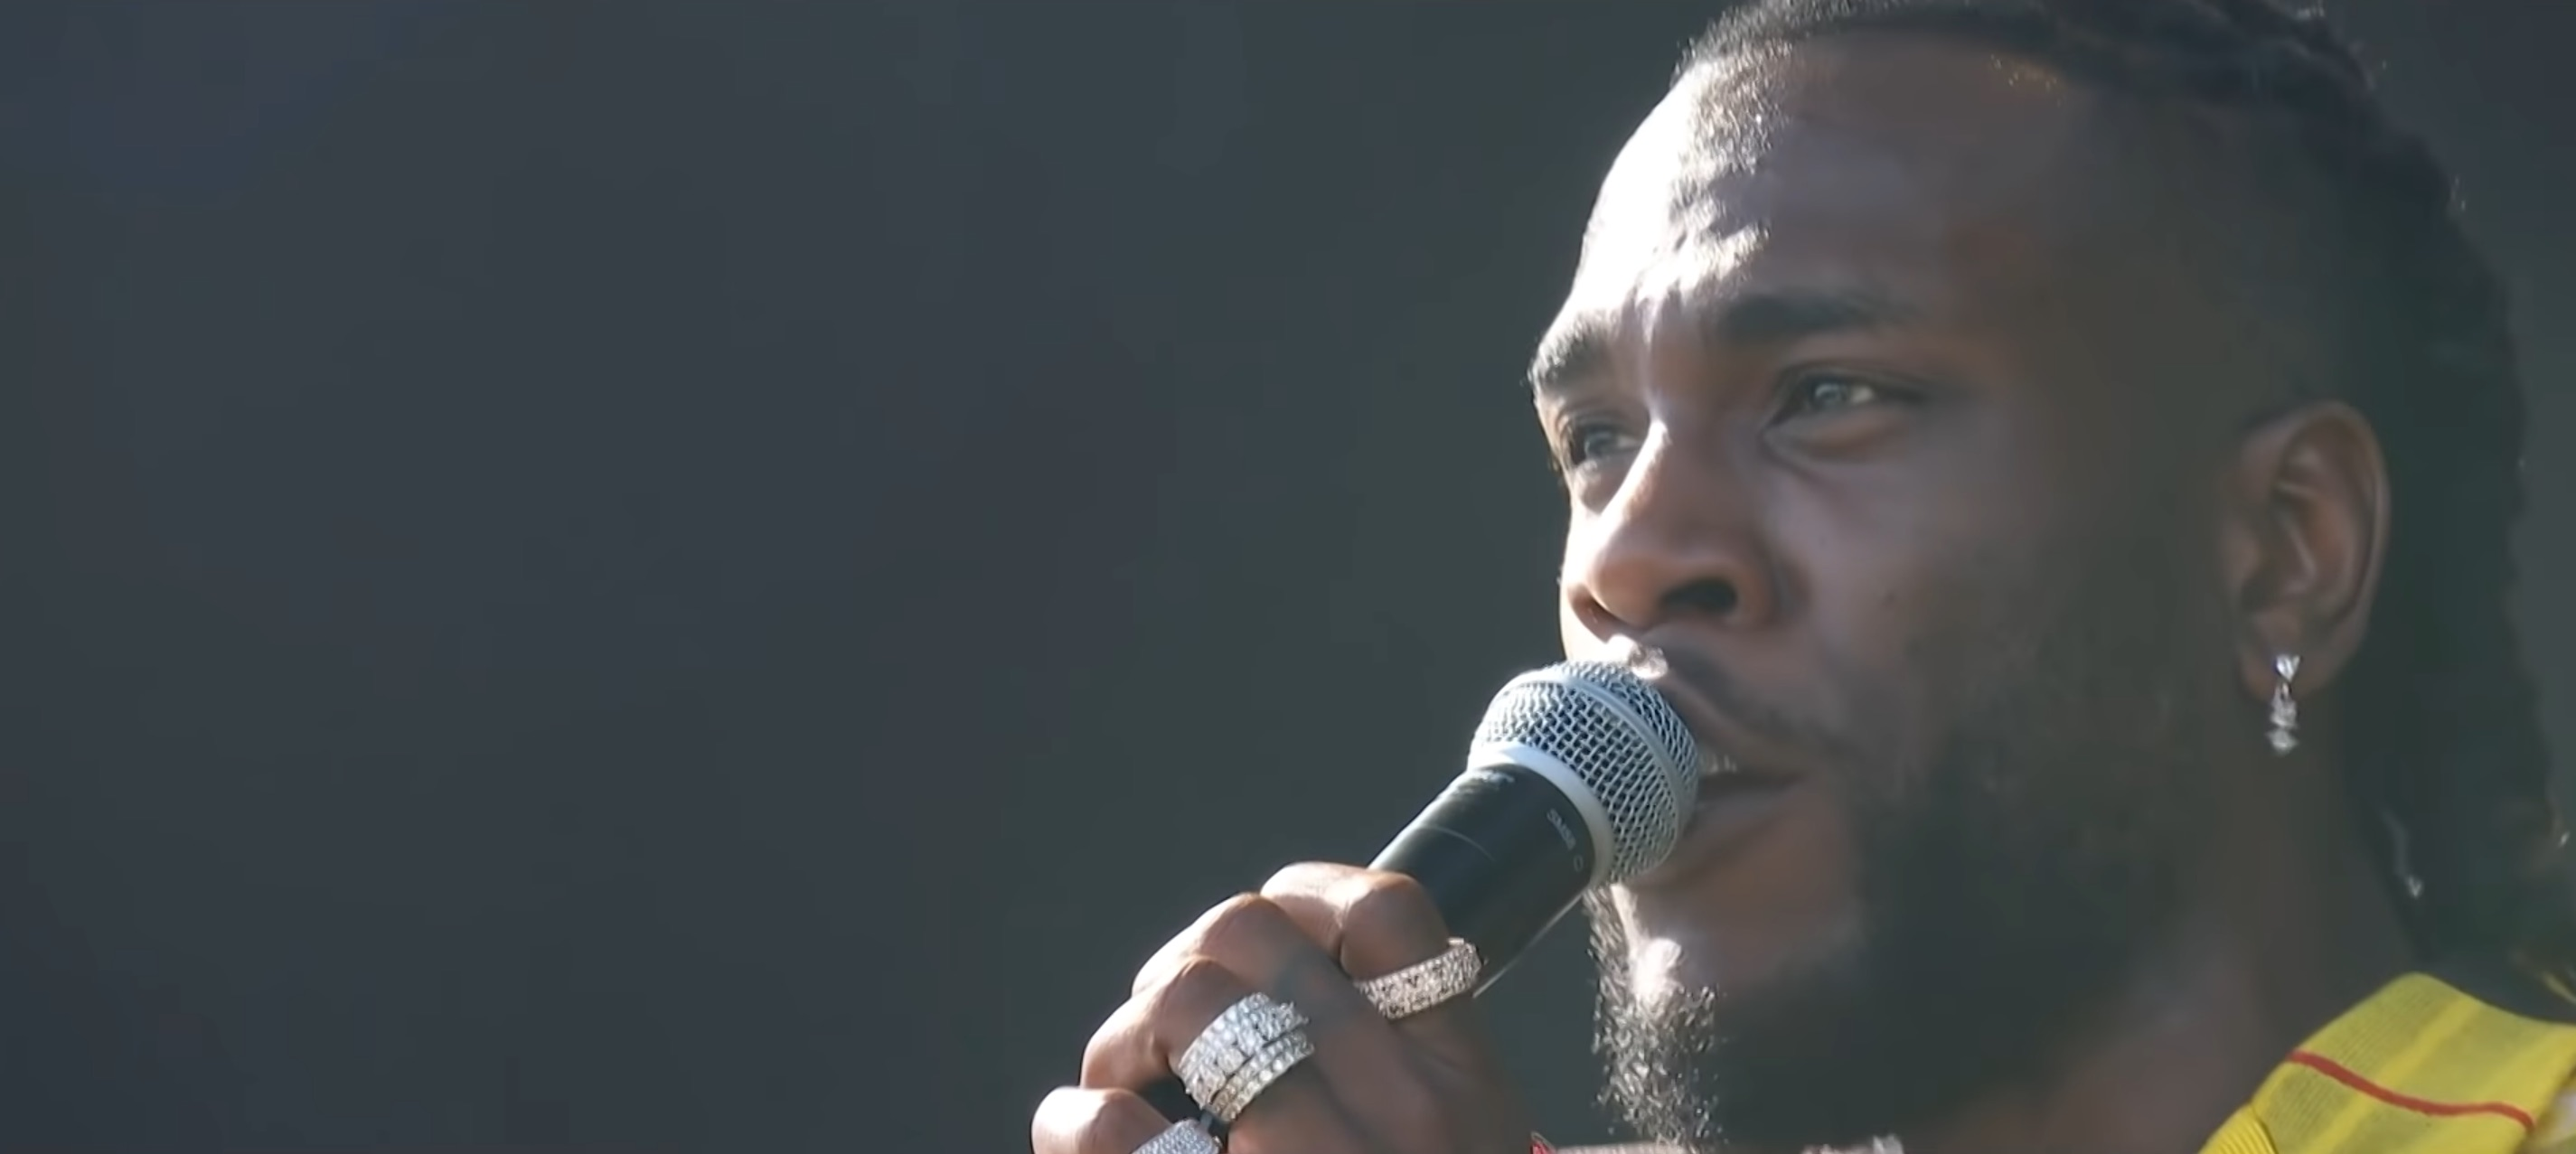 Watch Burna Boy's perform 'Ye' at Coachella - TRACE